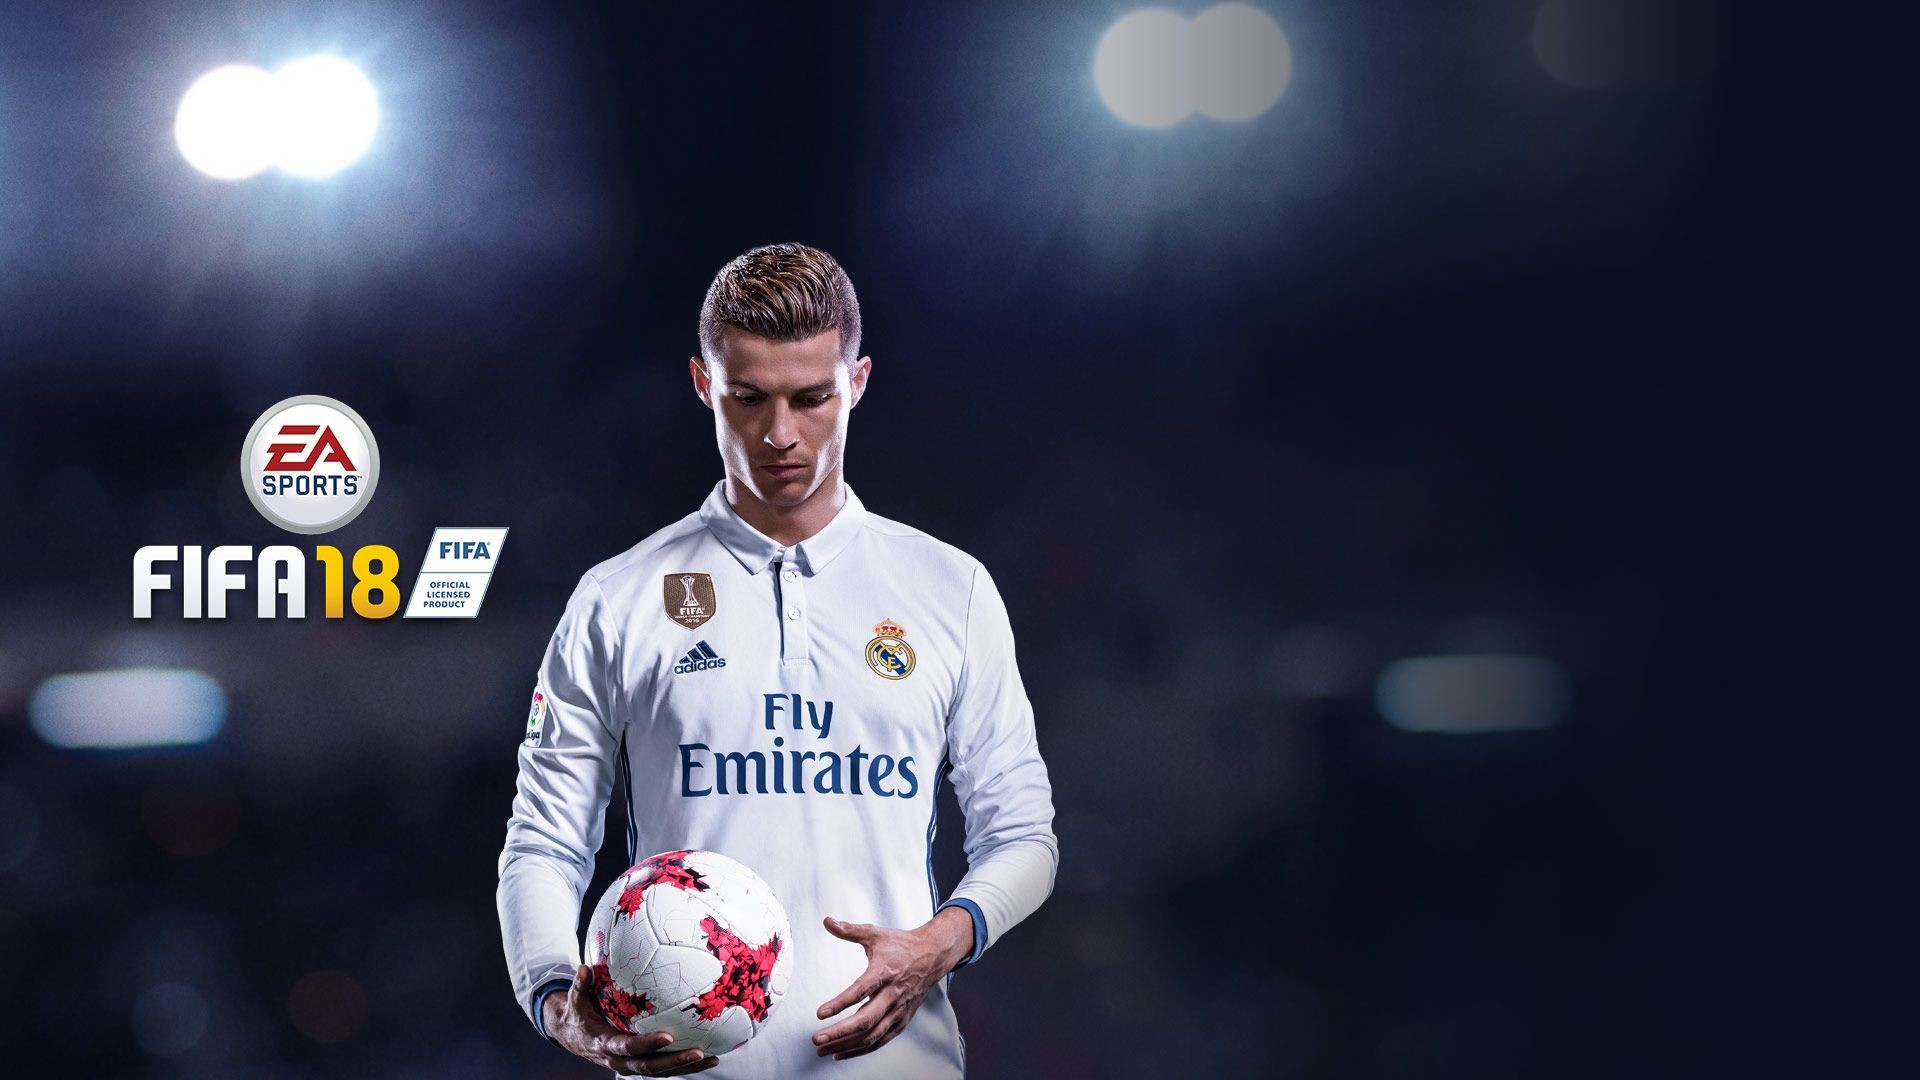 1920x1080 FIFA 2018 Cover Wallpaper